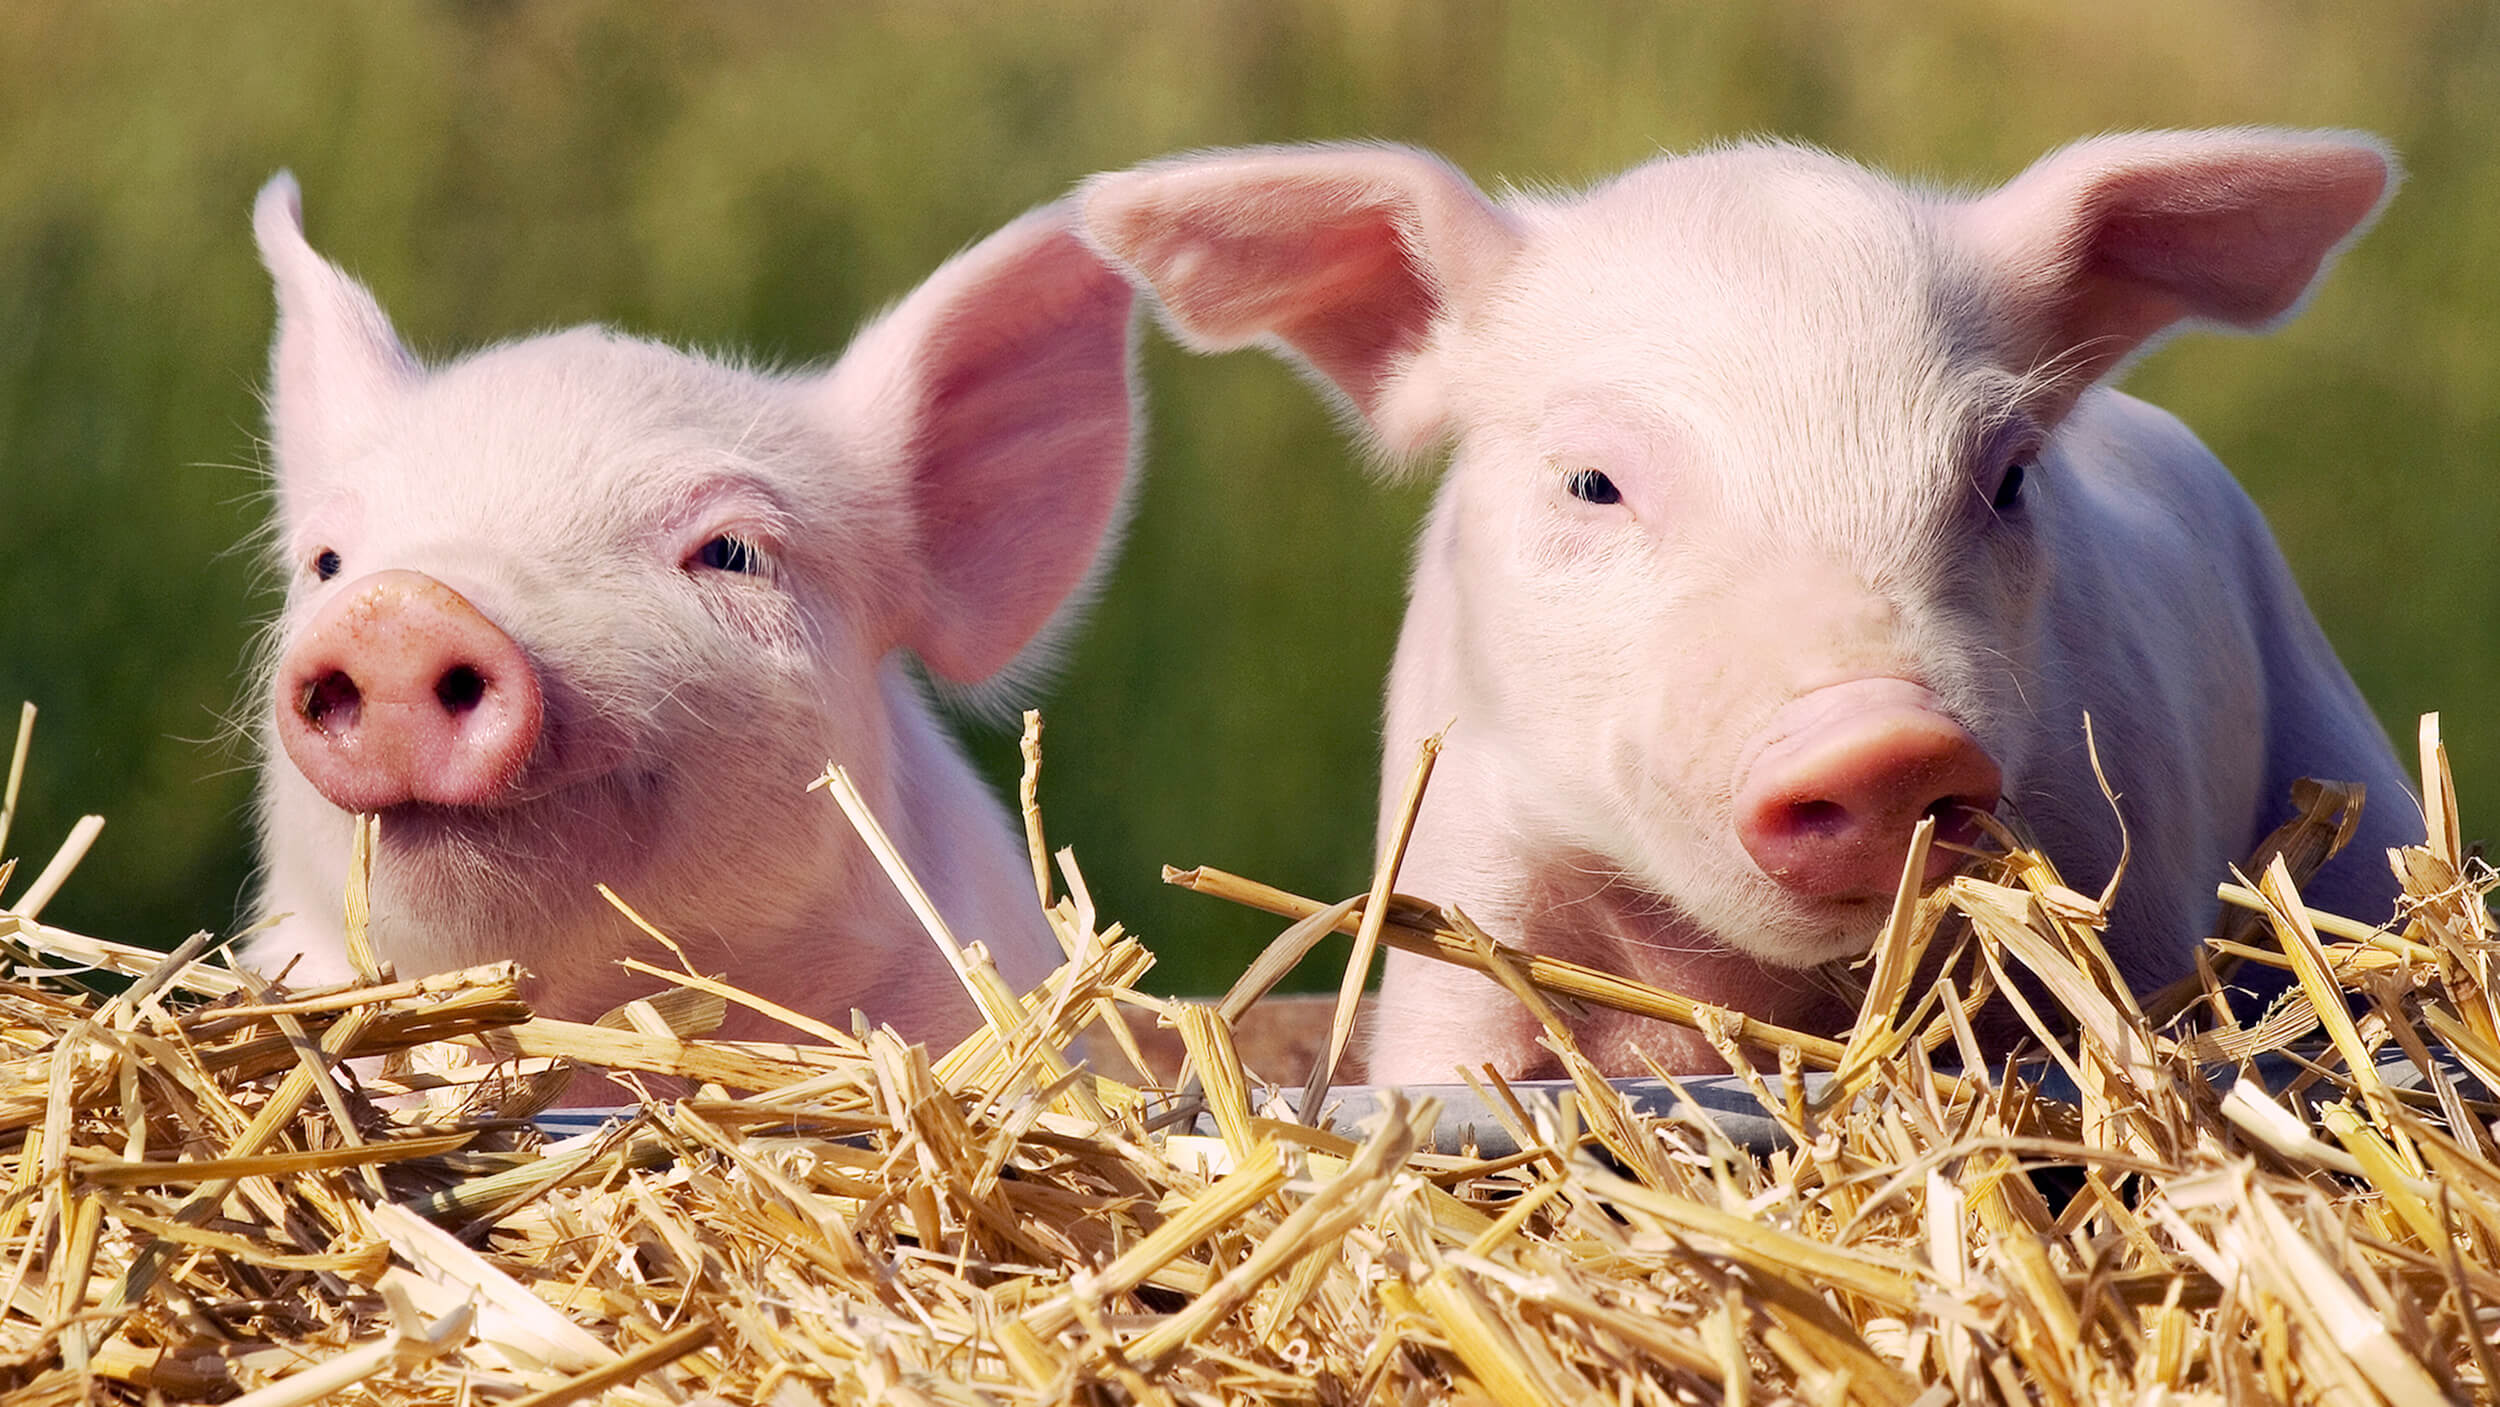 piglets today tease a c b ccf c b f